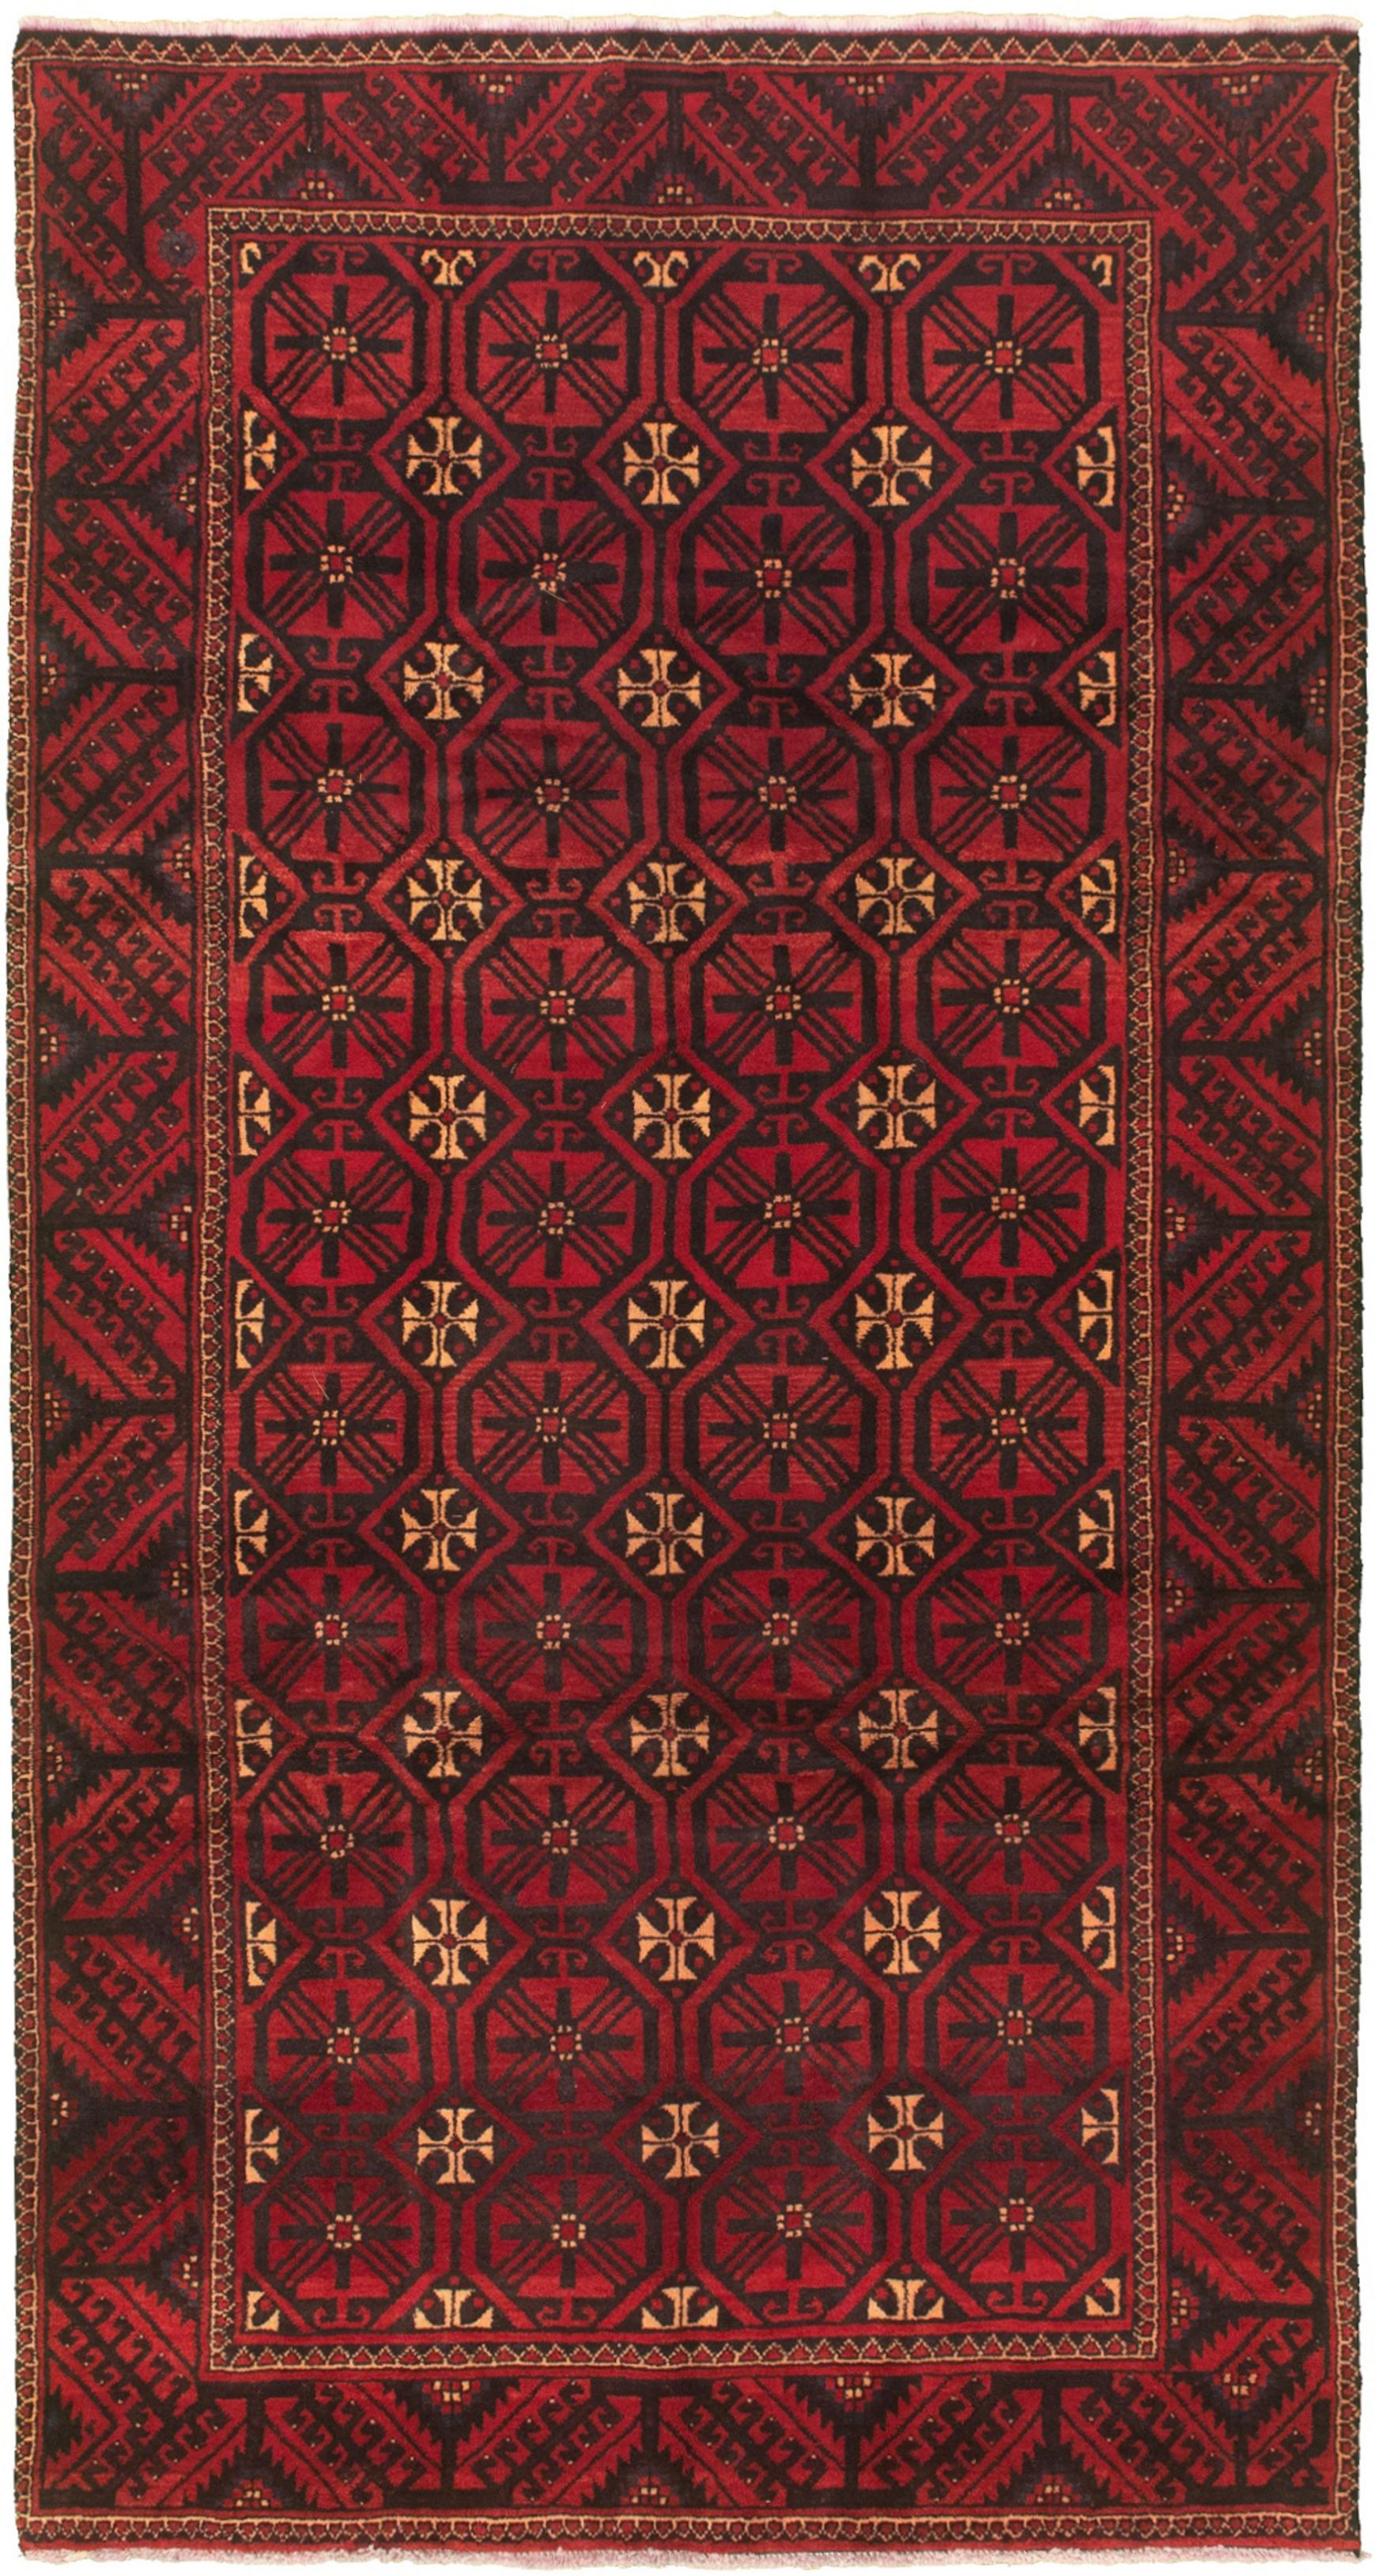 """Hand-knotted Authentic Turkish Red Wool Rug 5'1"""" x 9'6""""  Size: 5'1"""" x 9'6"""""""